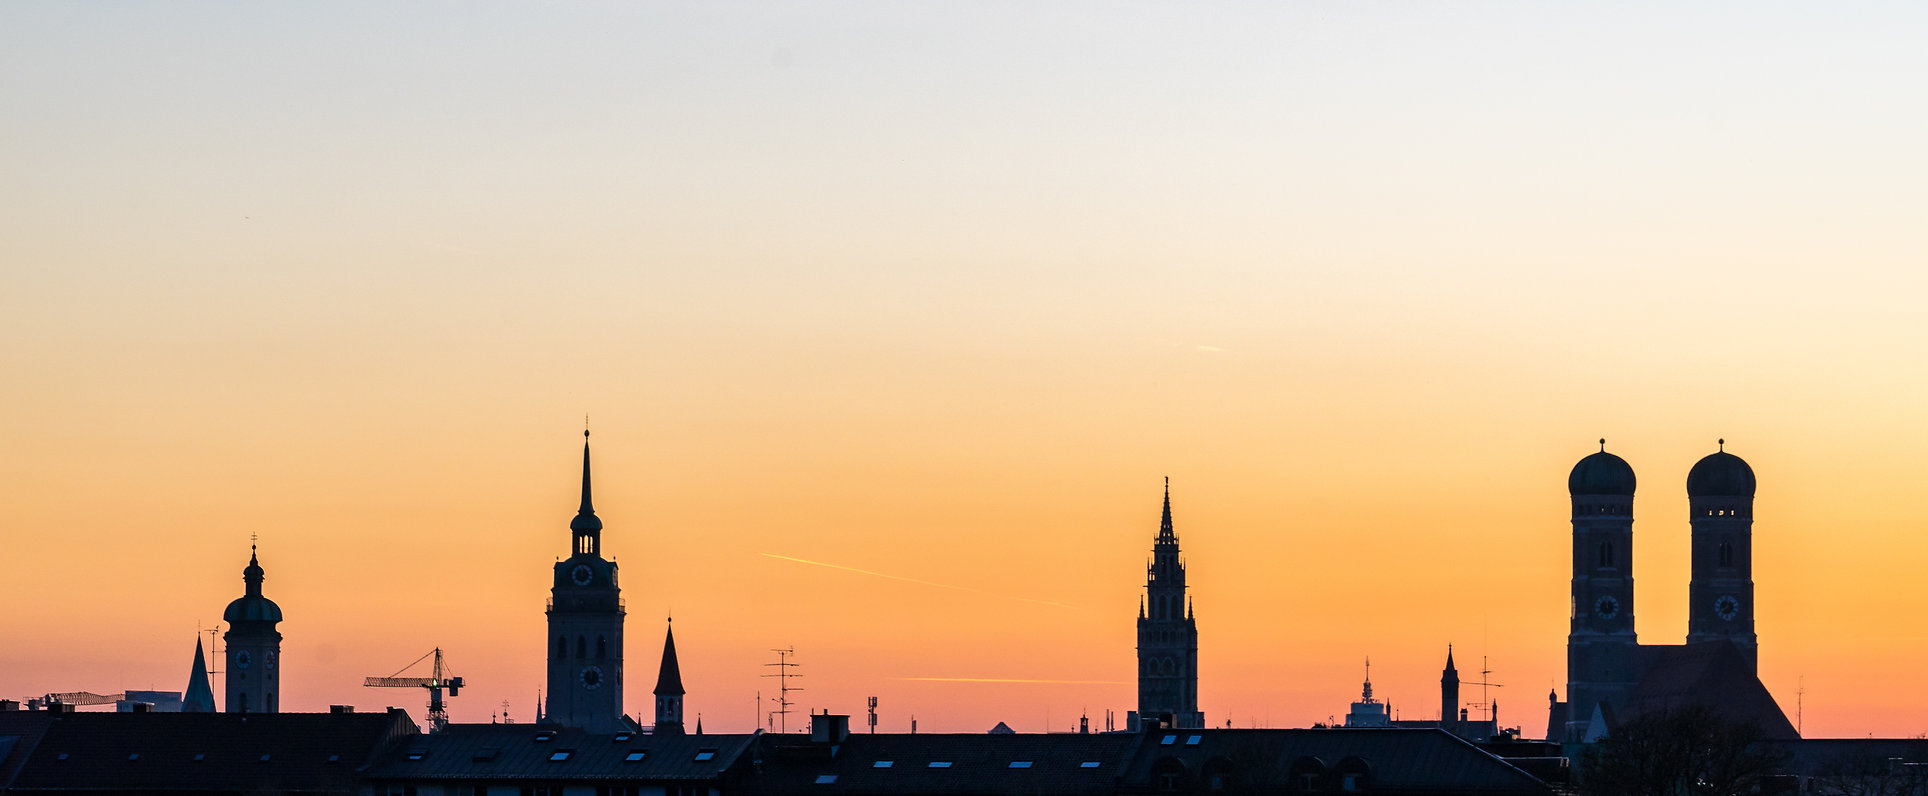 Munich Silhouette during sunset in Summe